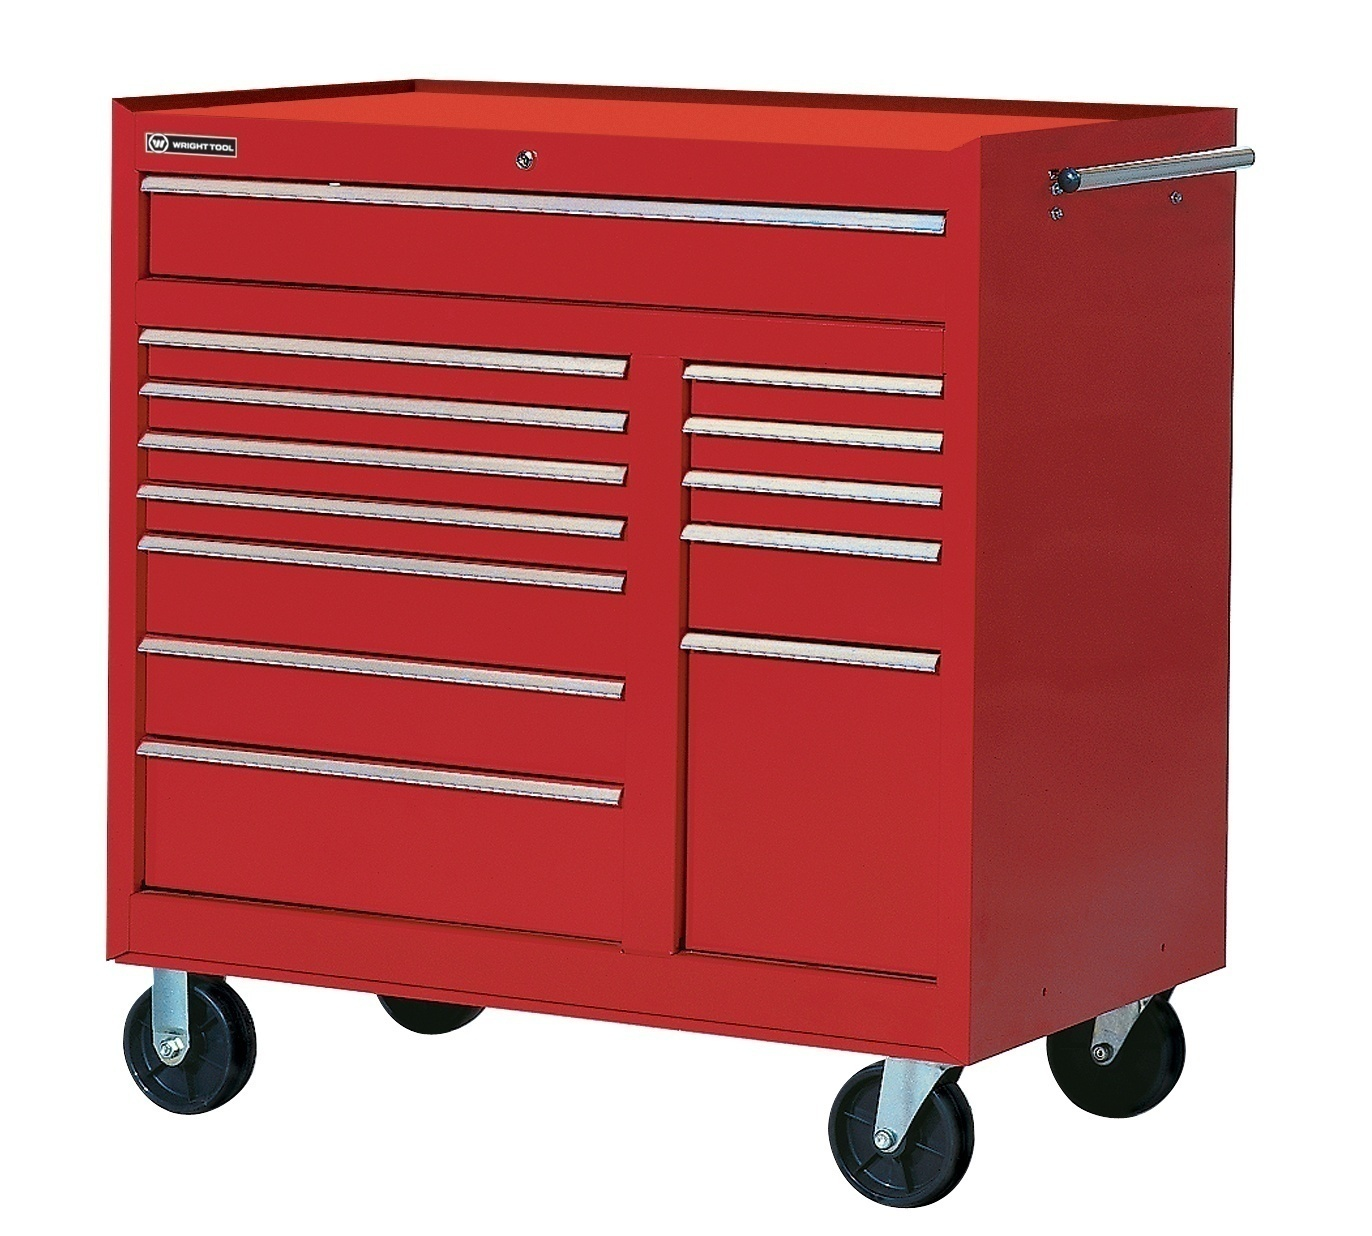 Wright Tool WT855, 13 Drawer Roller Cabinet from GME Supply